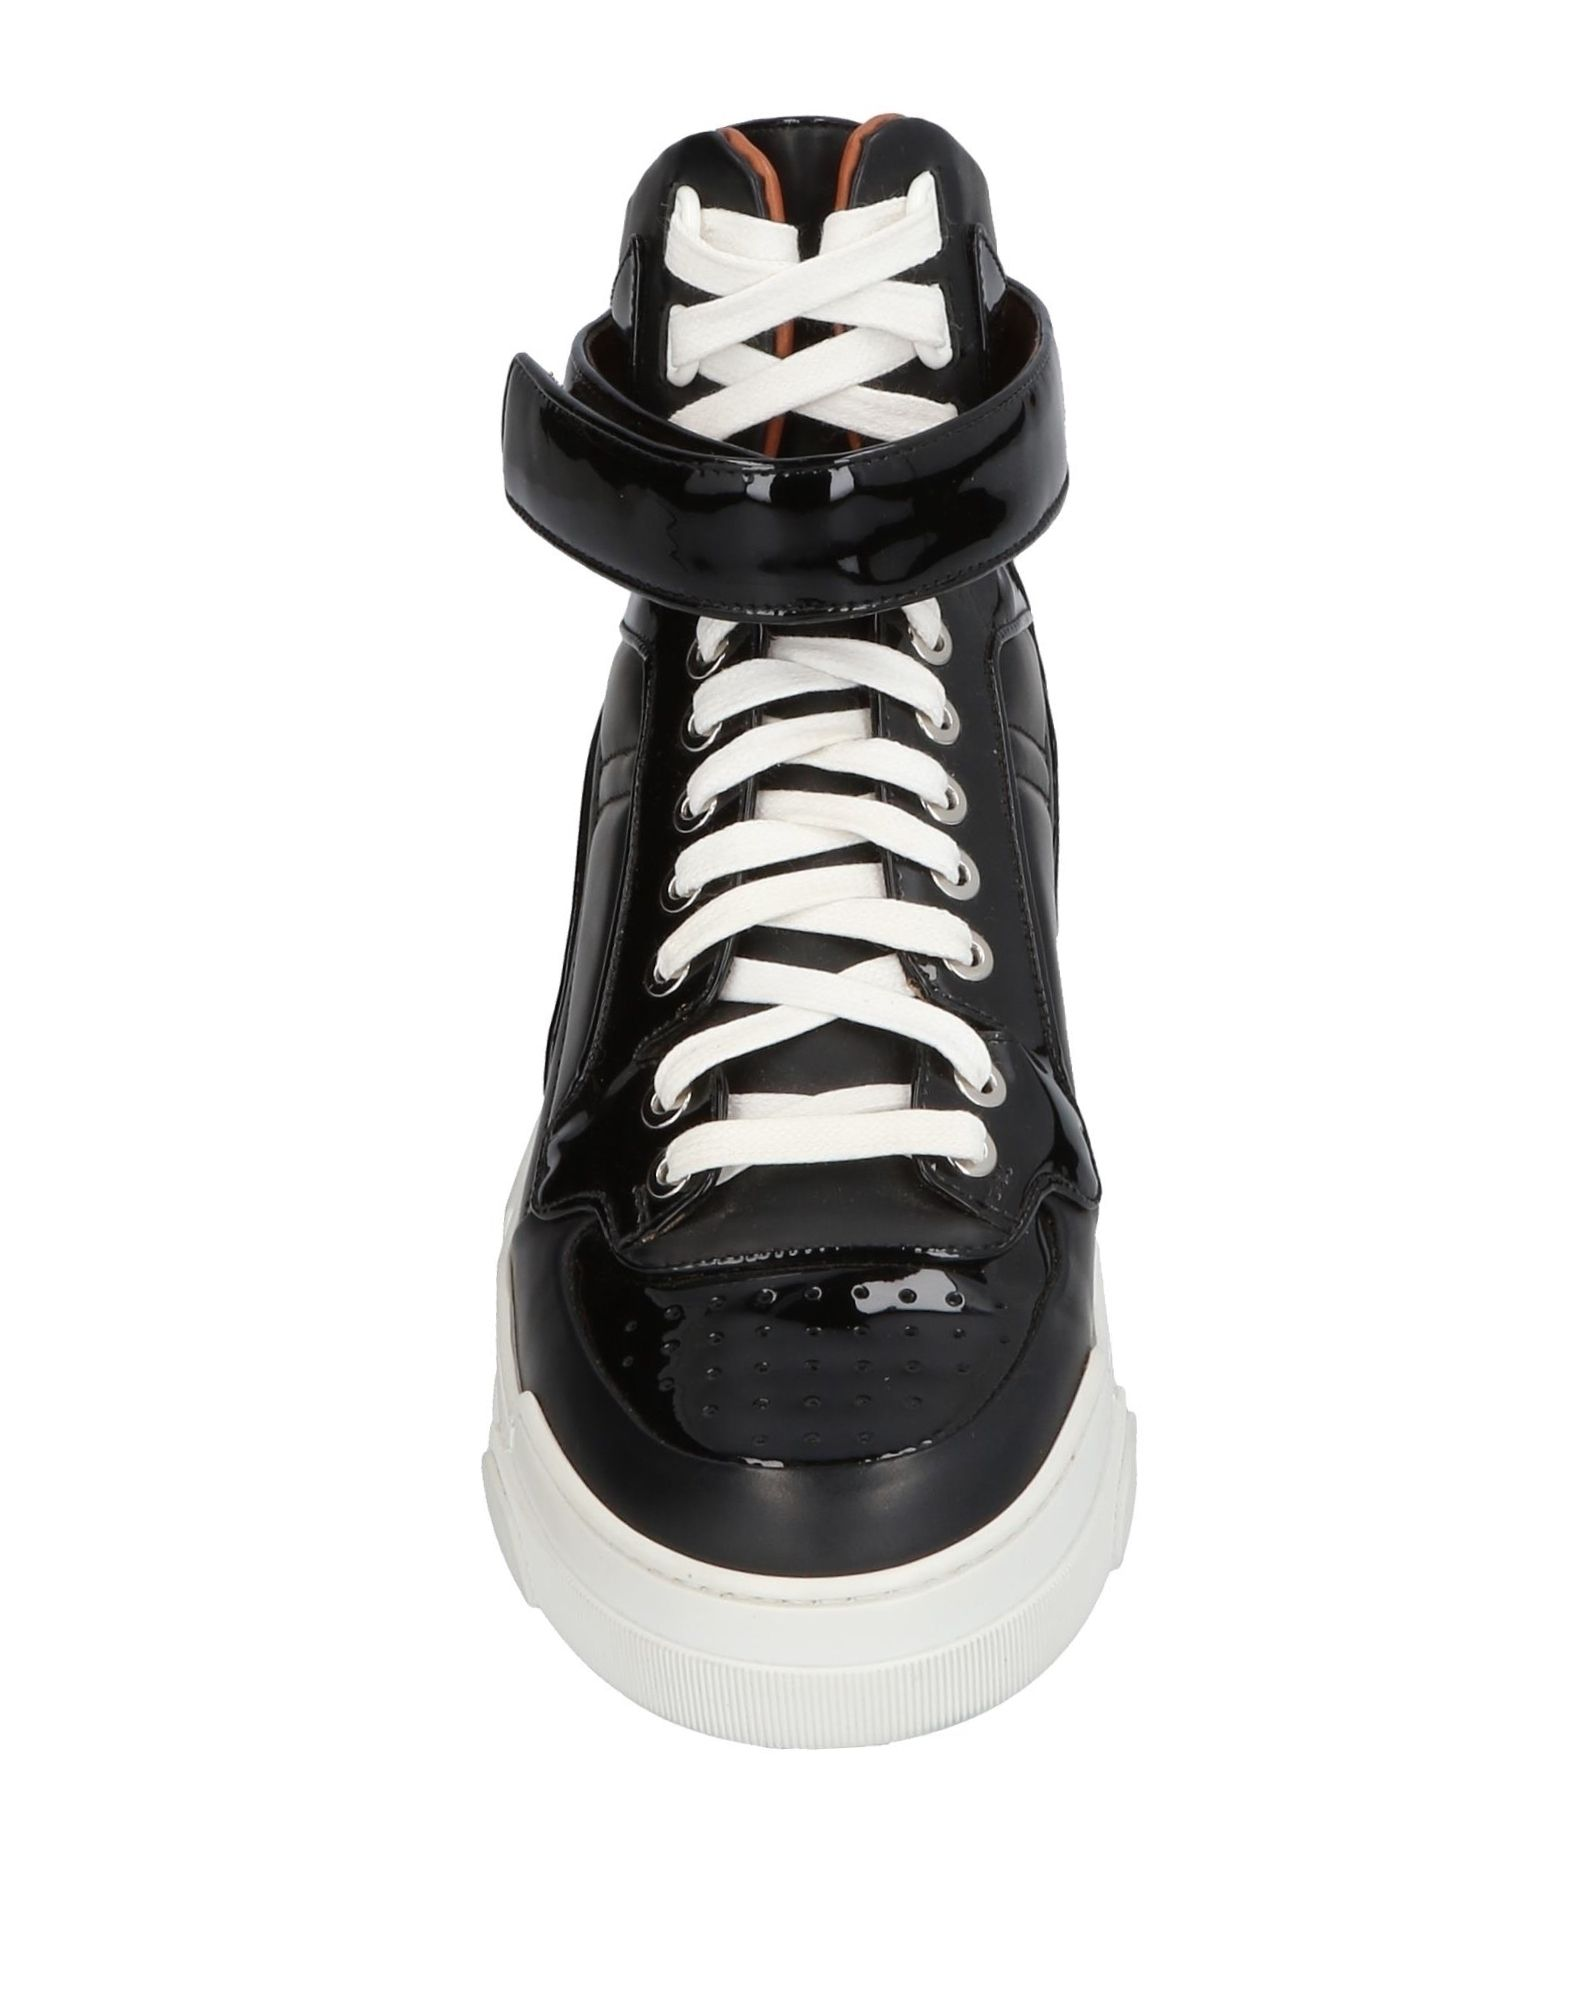 Sneakers Givenchy Femme - Sneakers Givenchy sur